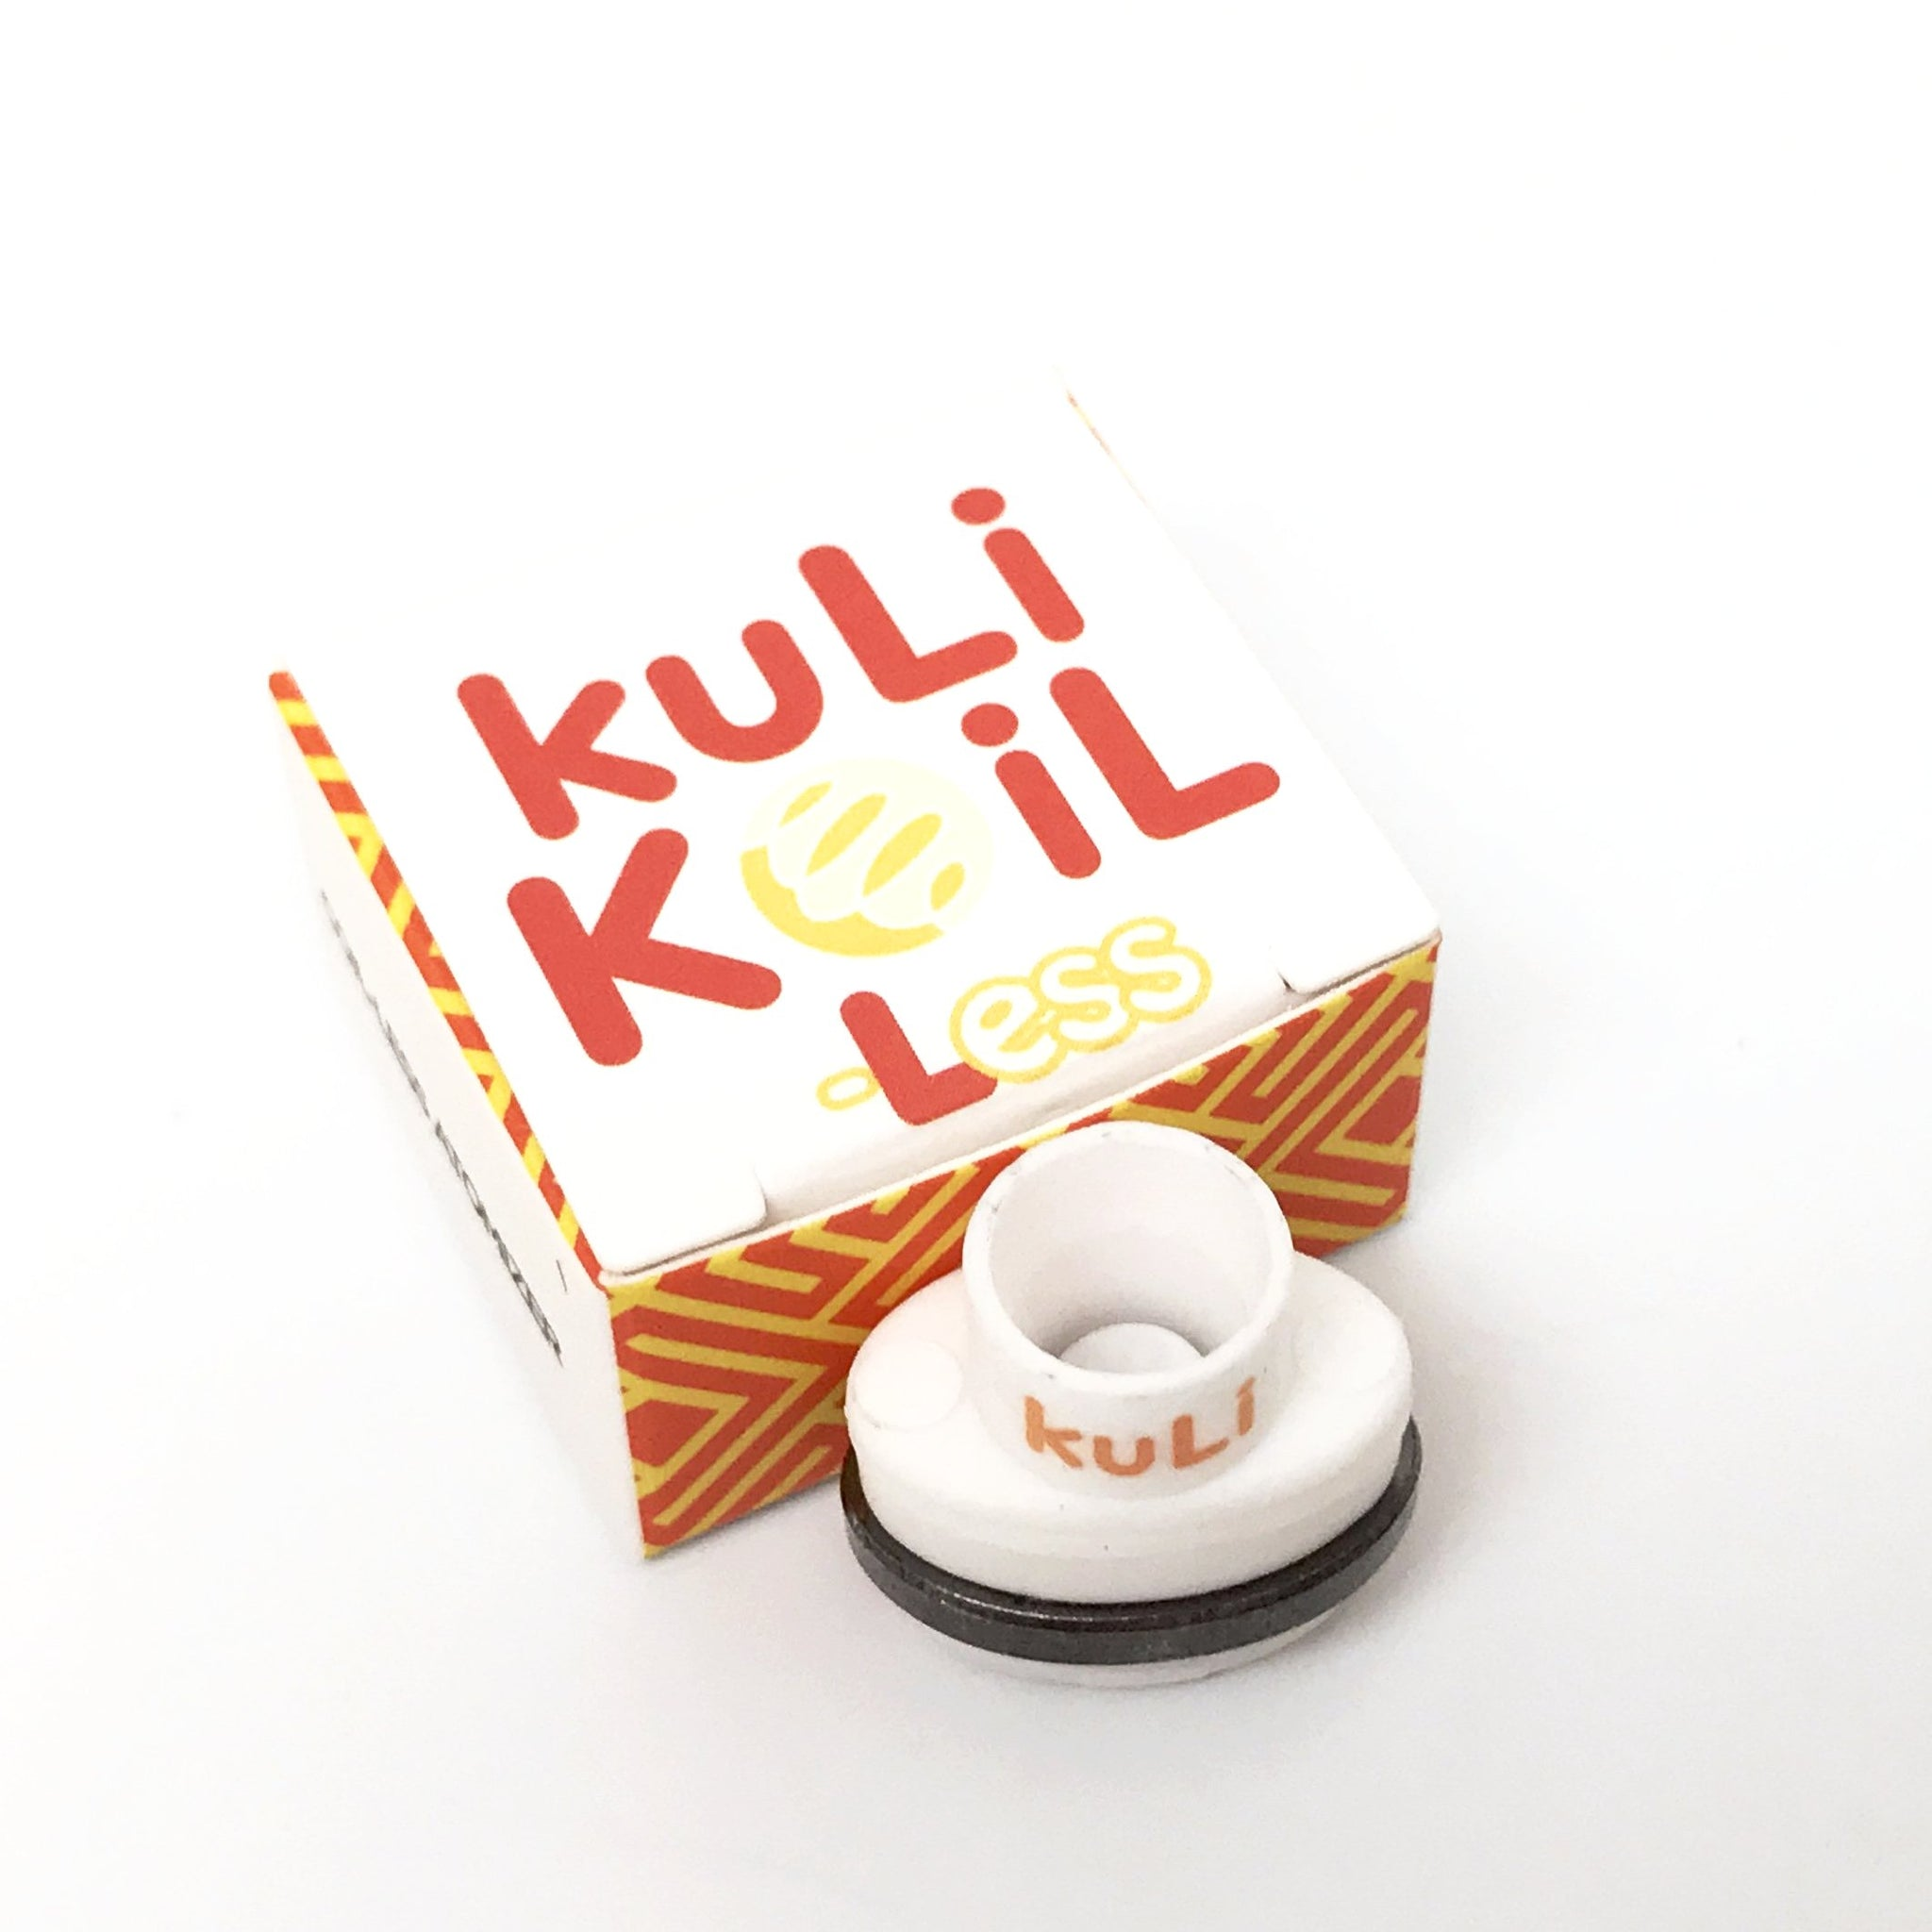 kuLi koiL-Less